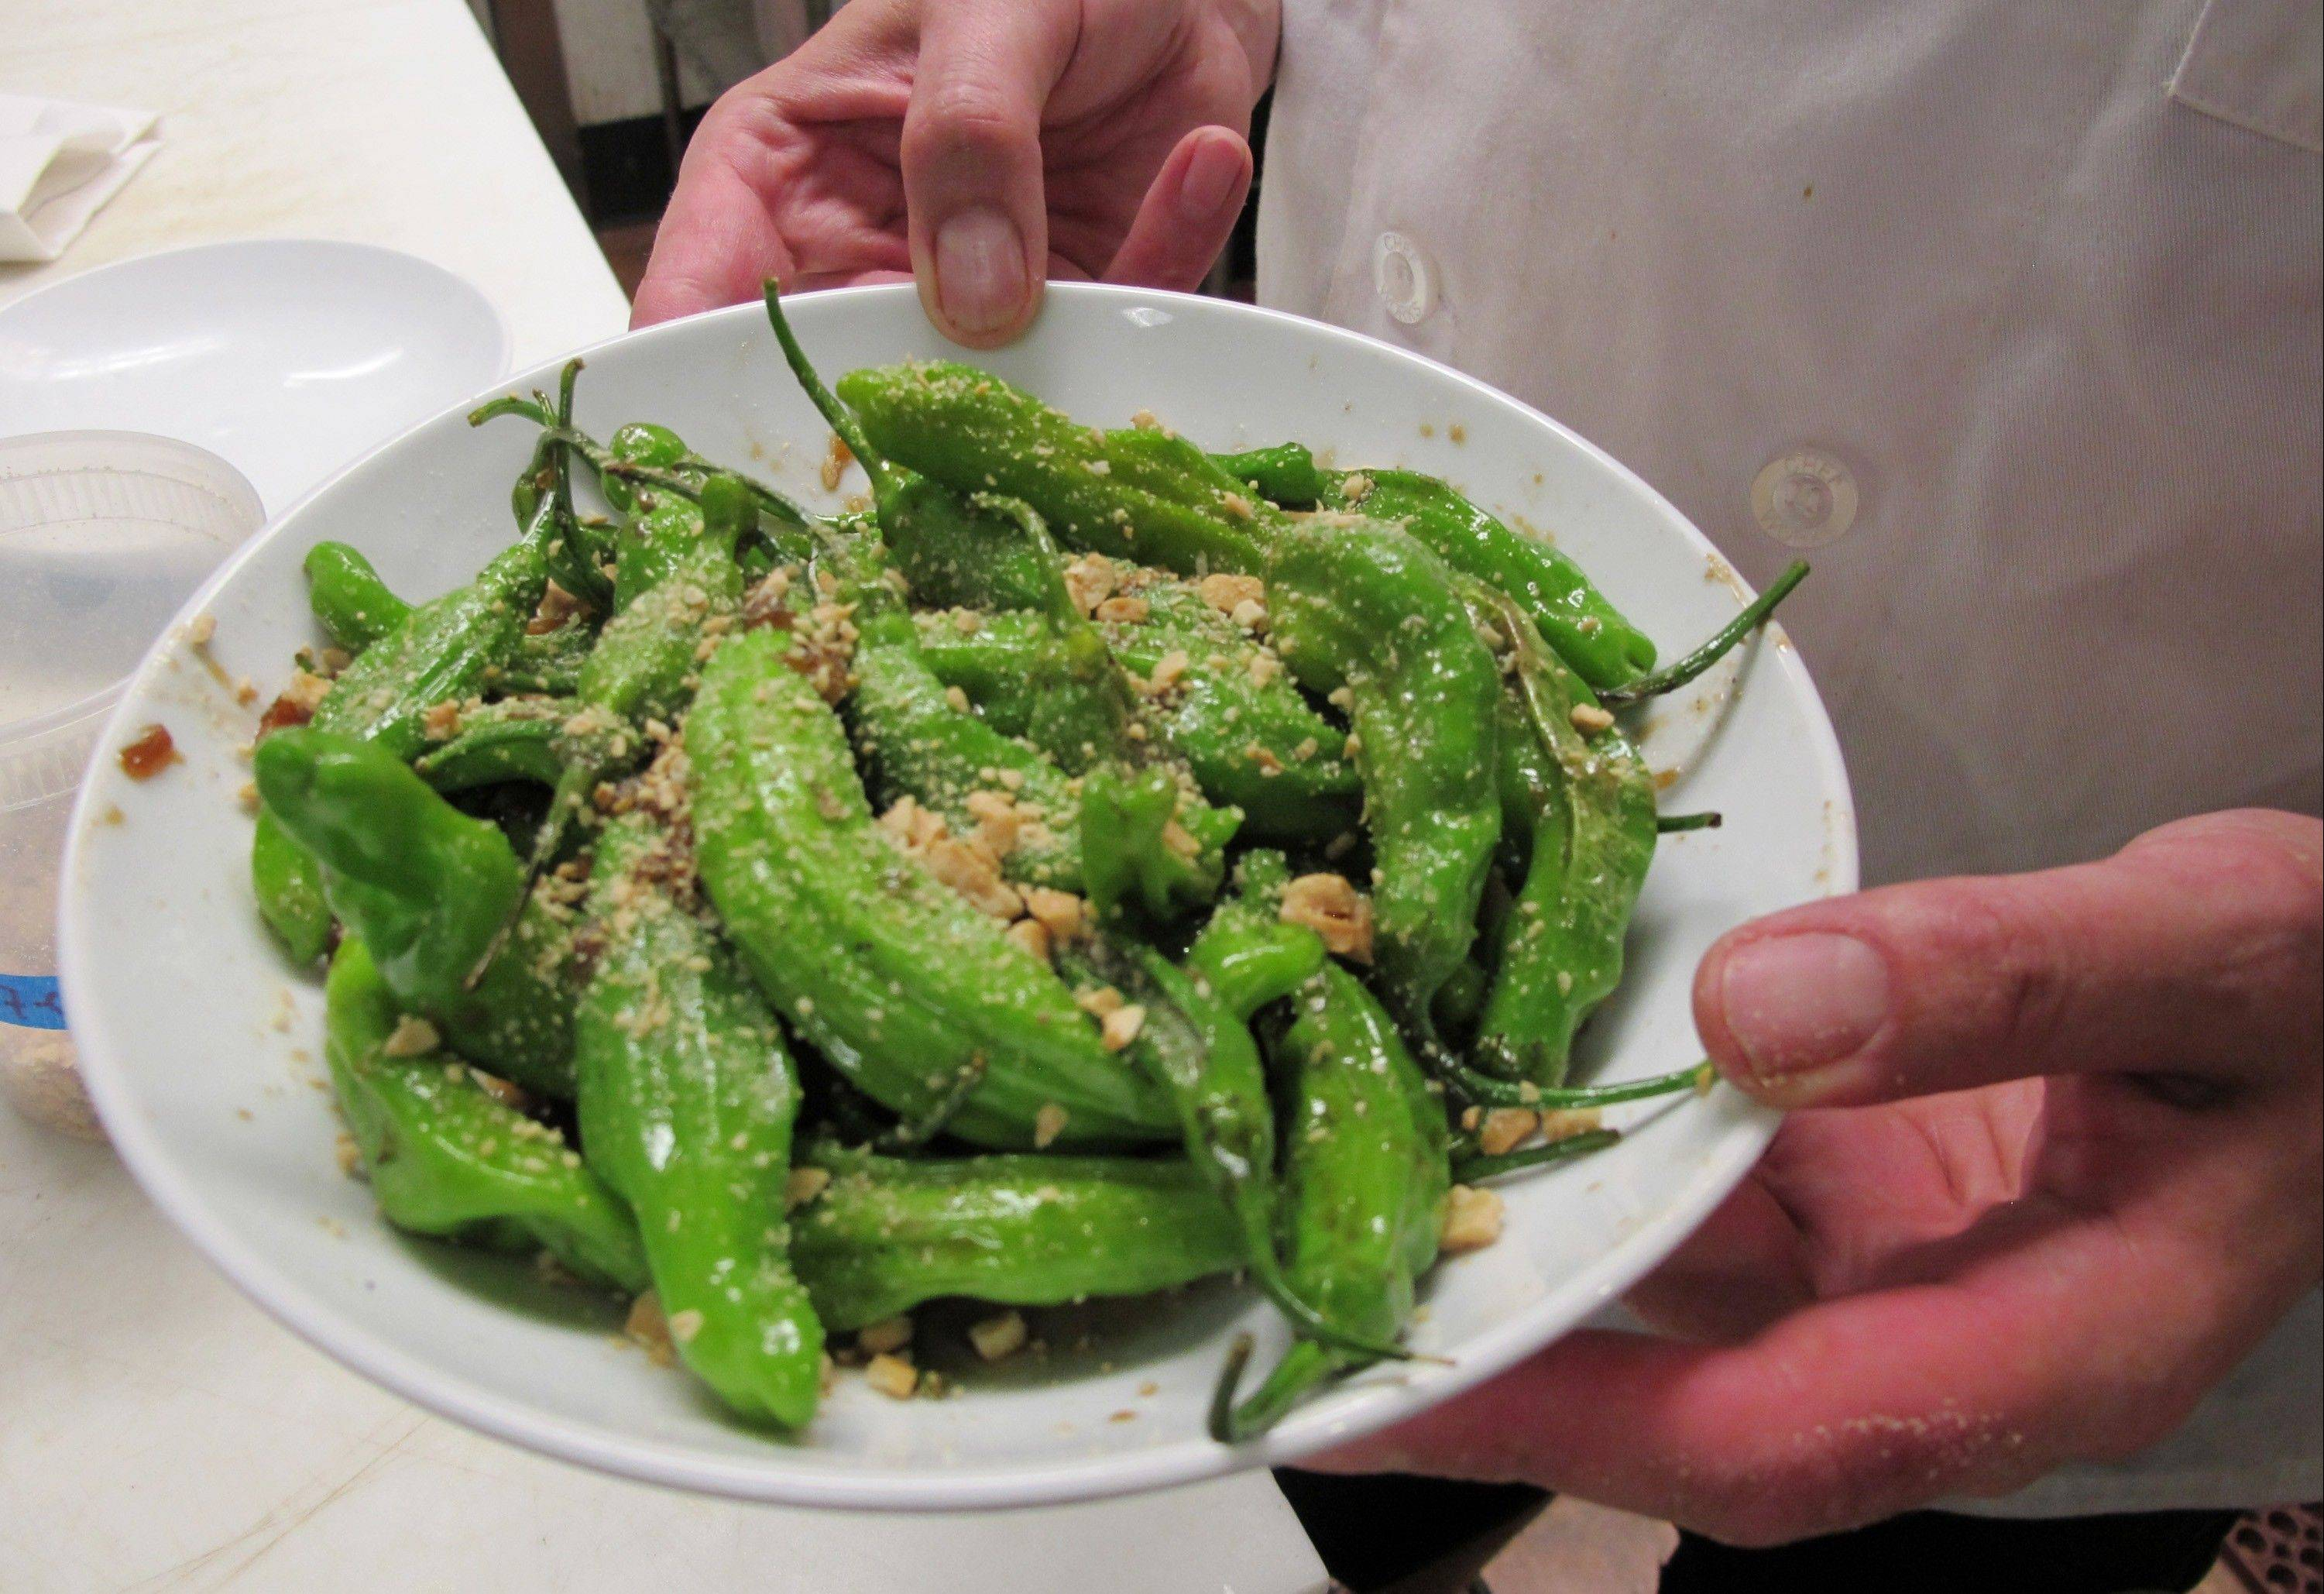 Shishito peppers: From hipster menus to your grill